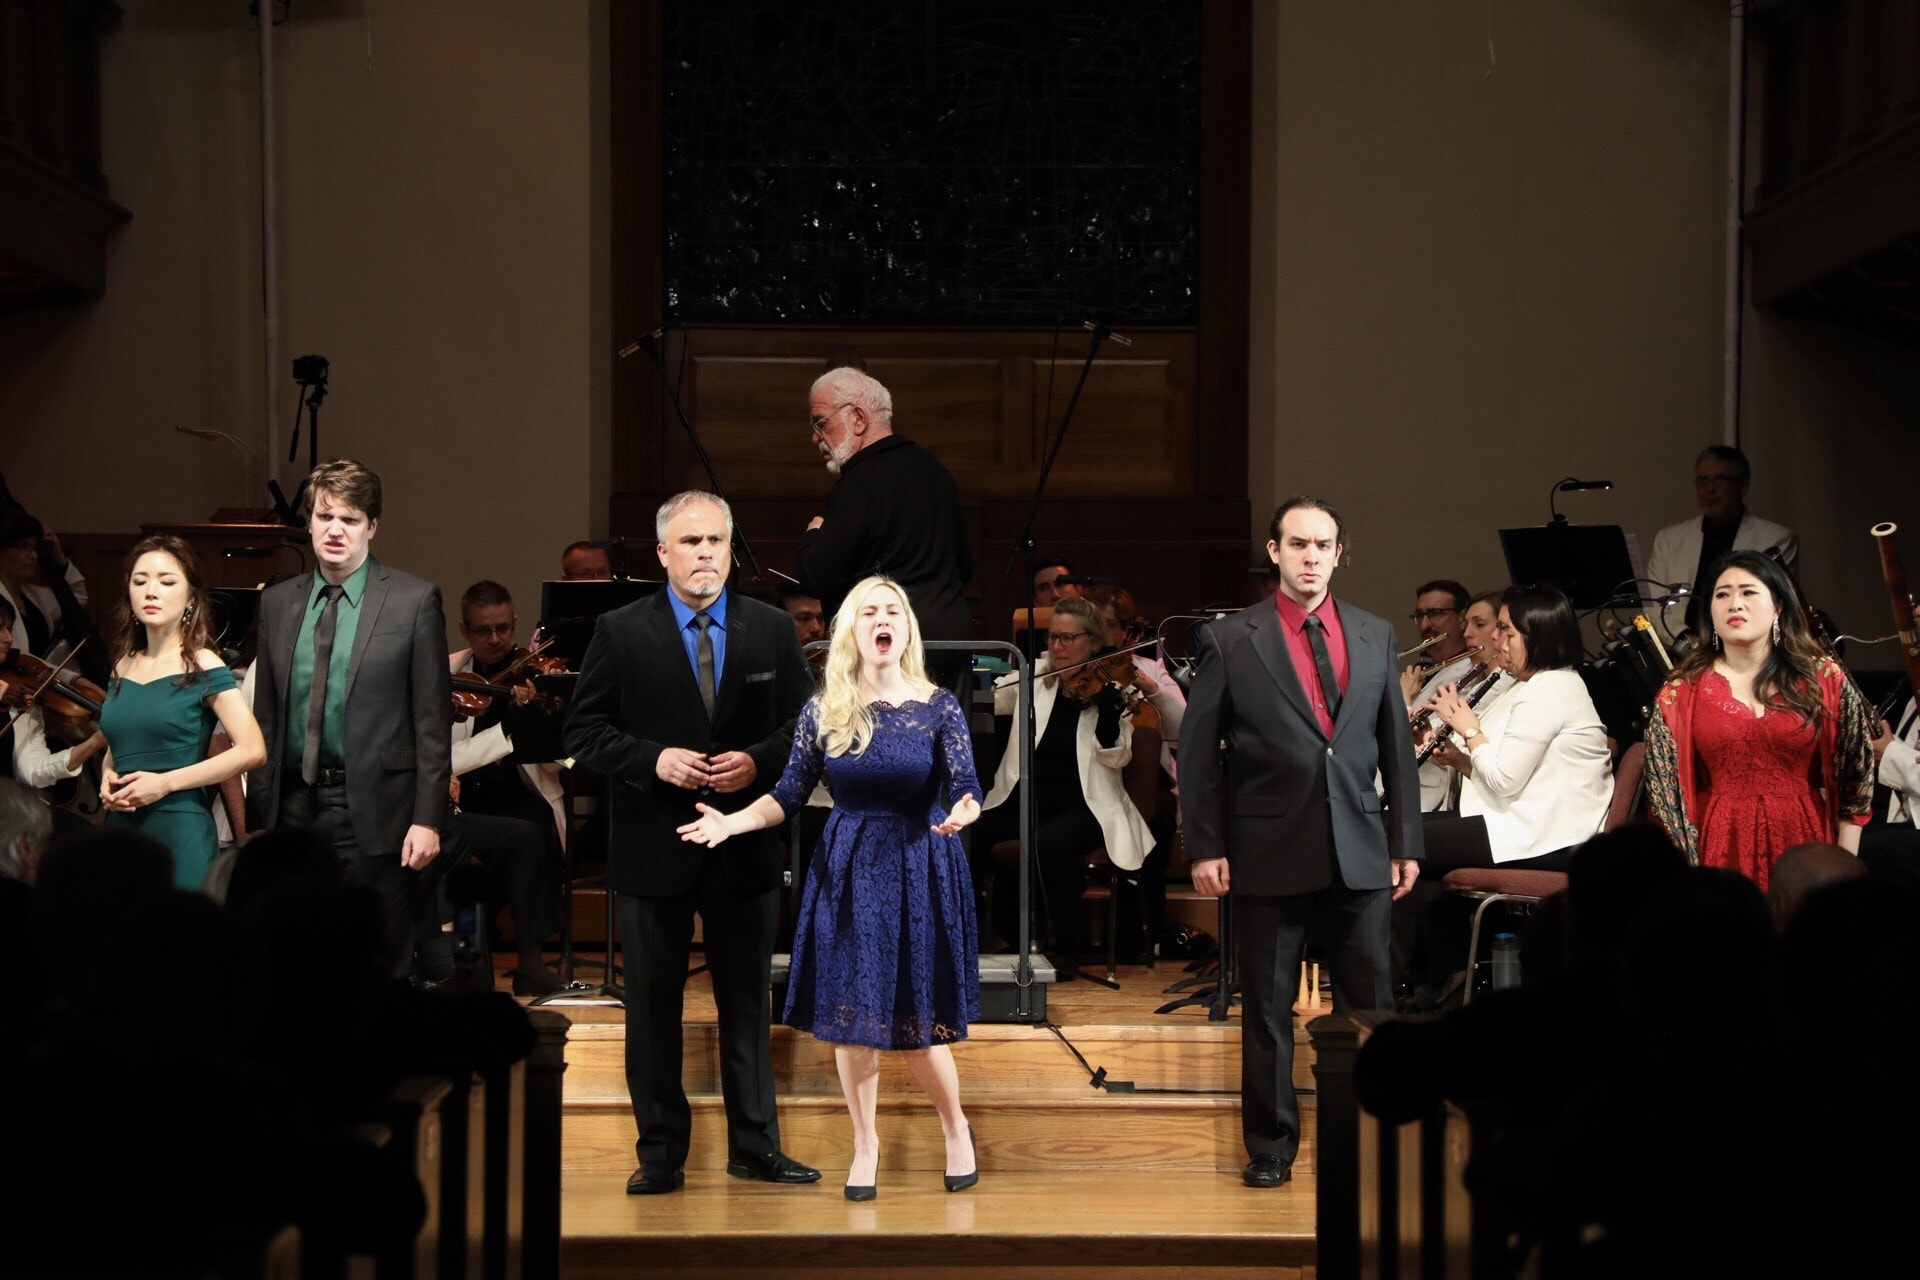 Maryland Lyric Opera's Young Artist Institute performed 'An Evening Of Mozart: The Da Ponte Operas' at Bethesda United Methodist Church on March 15 and 16. Photo courtesy of Matthew Woorman, Maryland Lyric Opera.